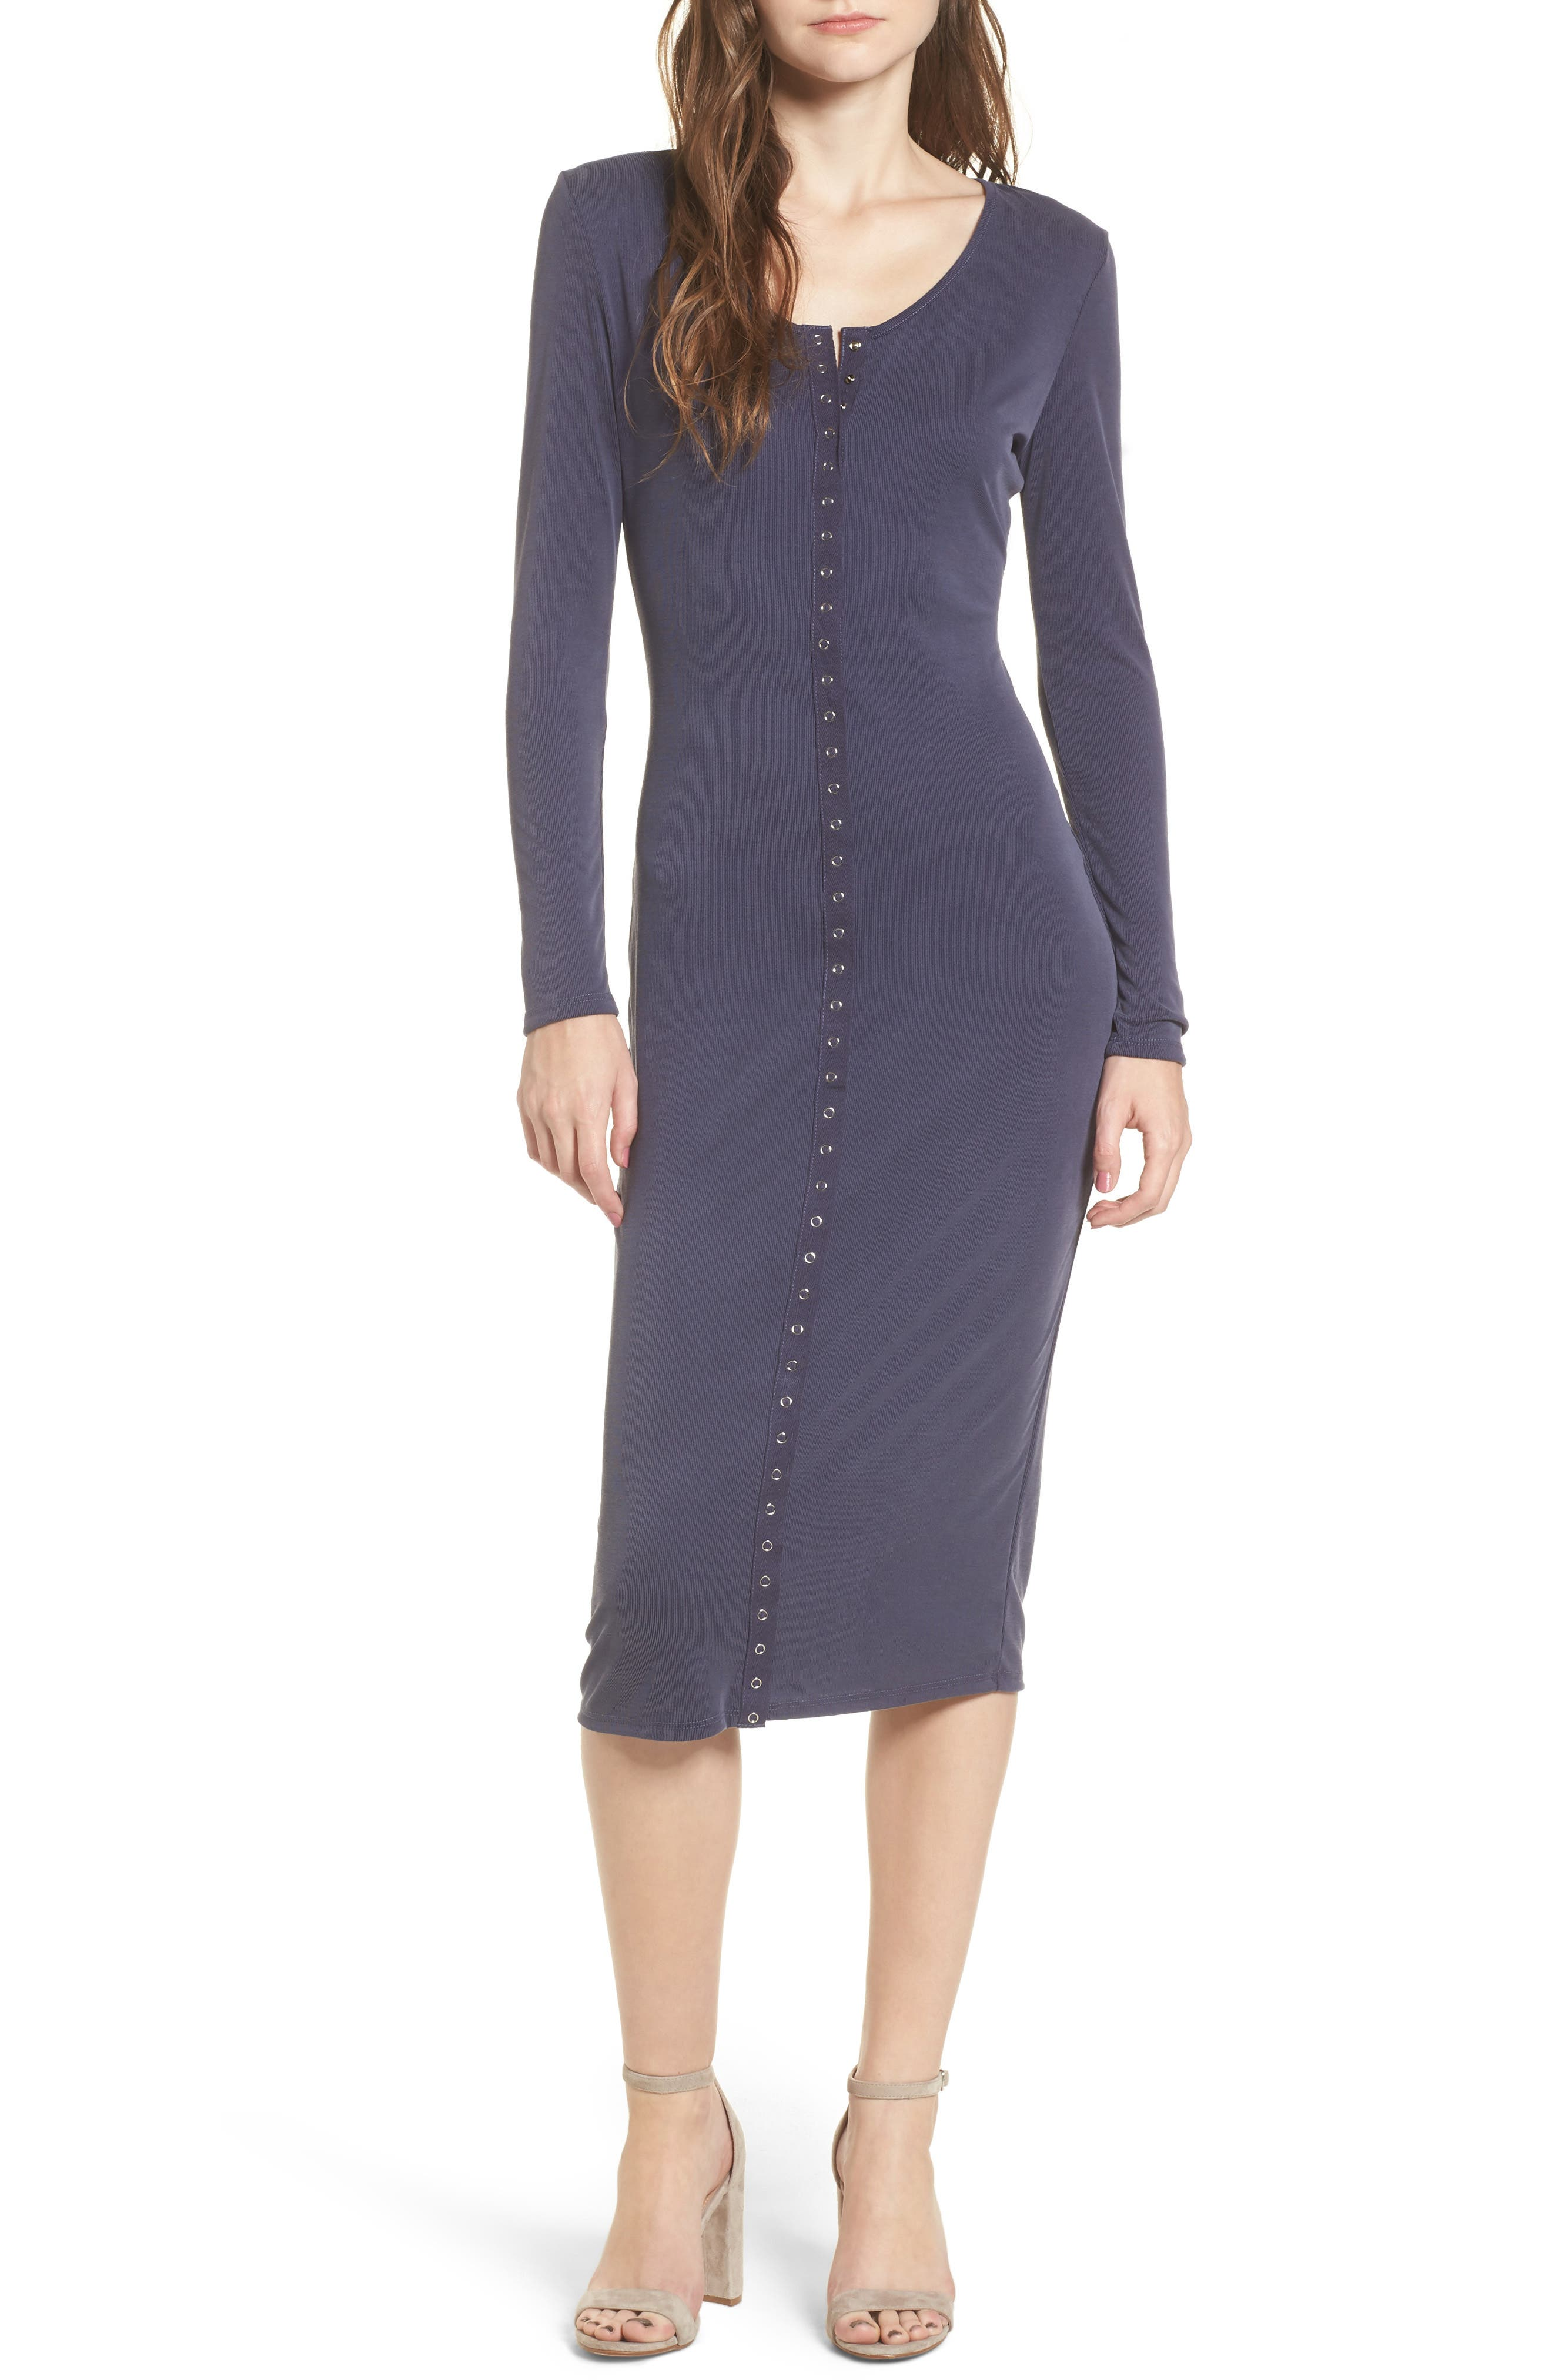 Alternate Image 1 Selected - BP. Snap Front Henley Dress